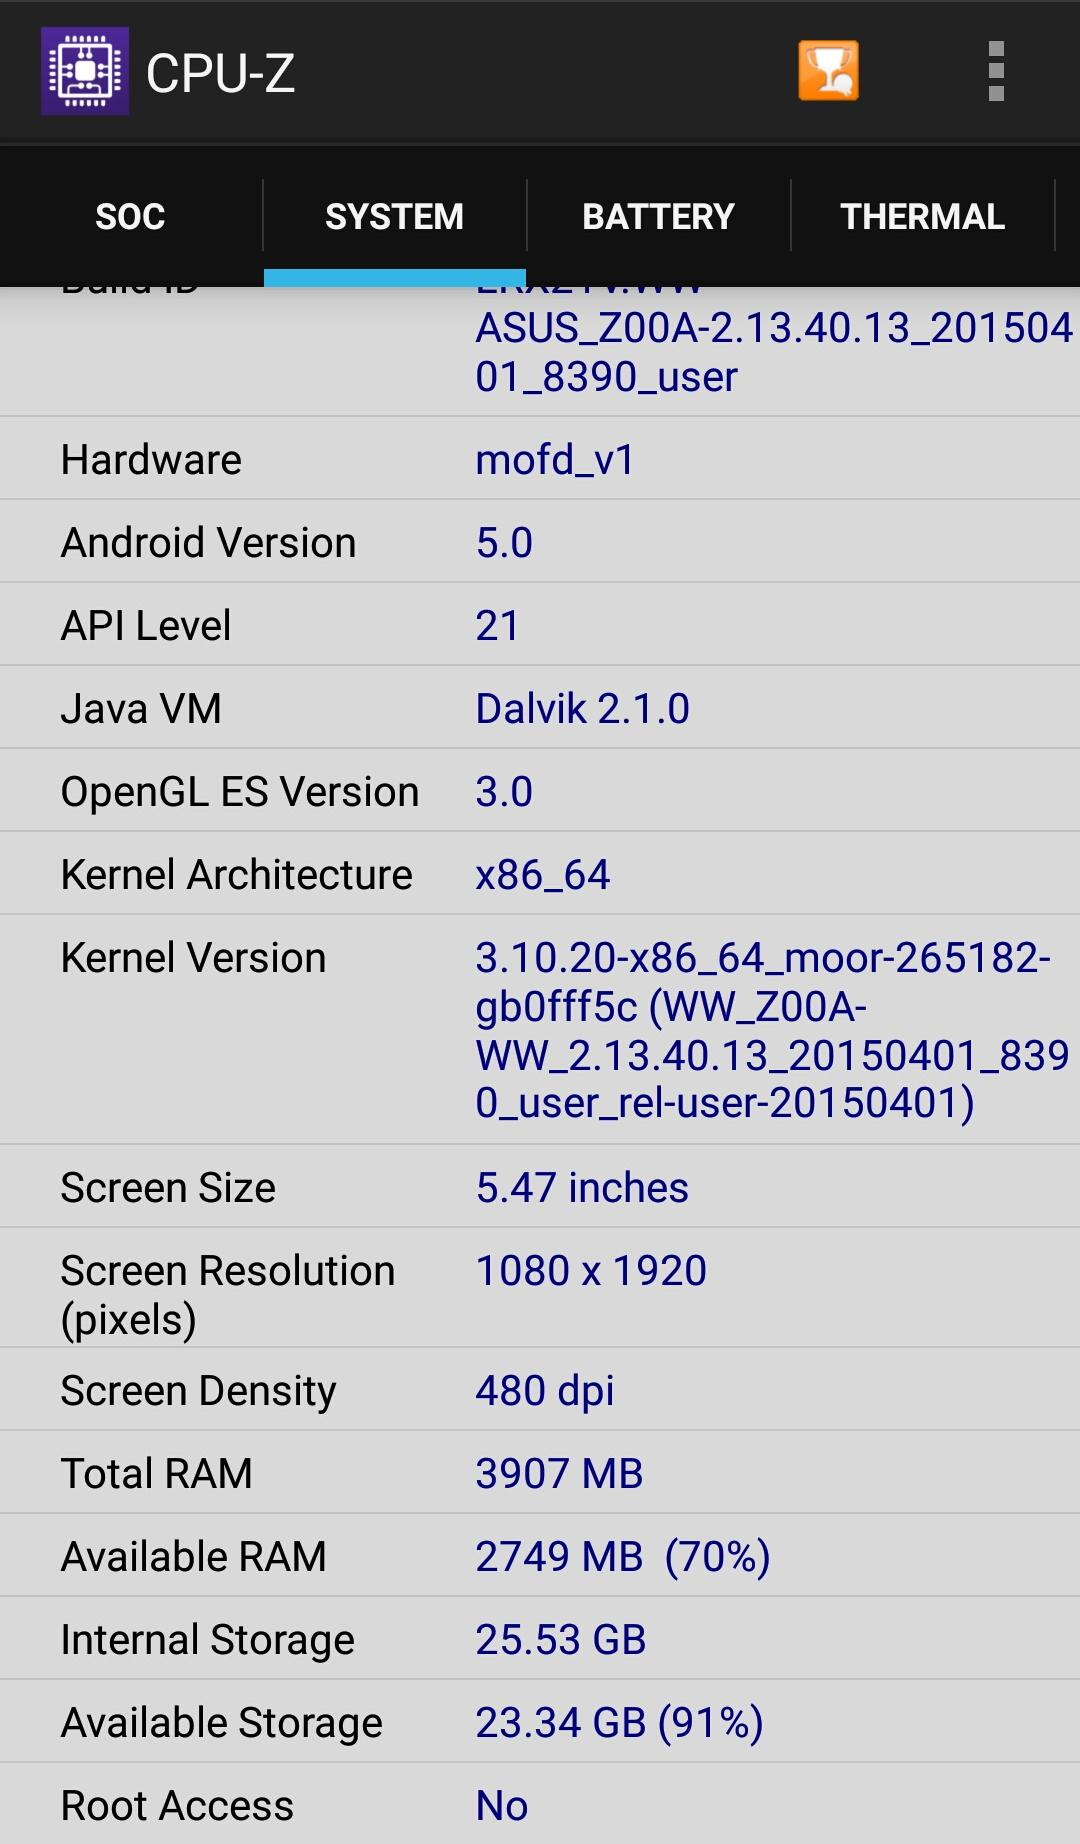 [開箱] 一機難求Zenfone2 ZE551ML 4GB-32GB入手開箱 - XFastest - CPU-Z.jpg